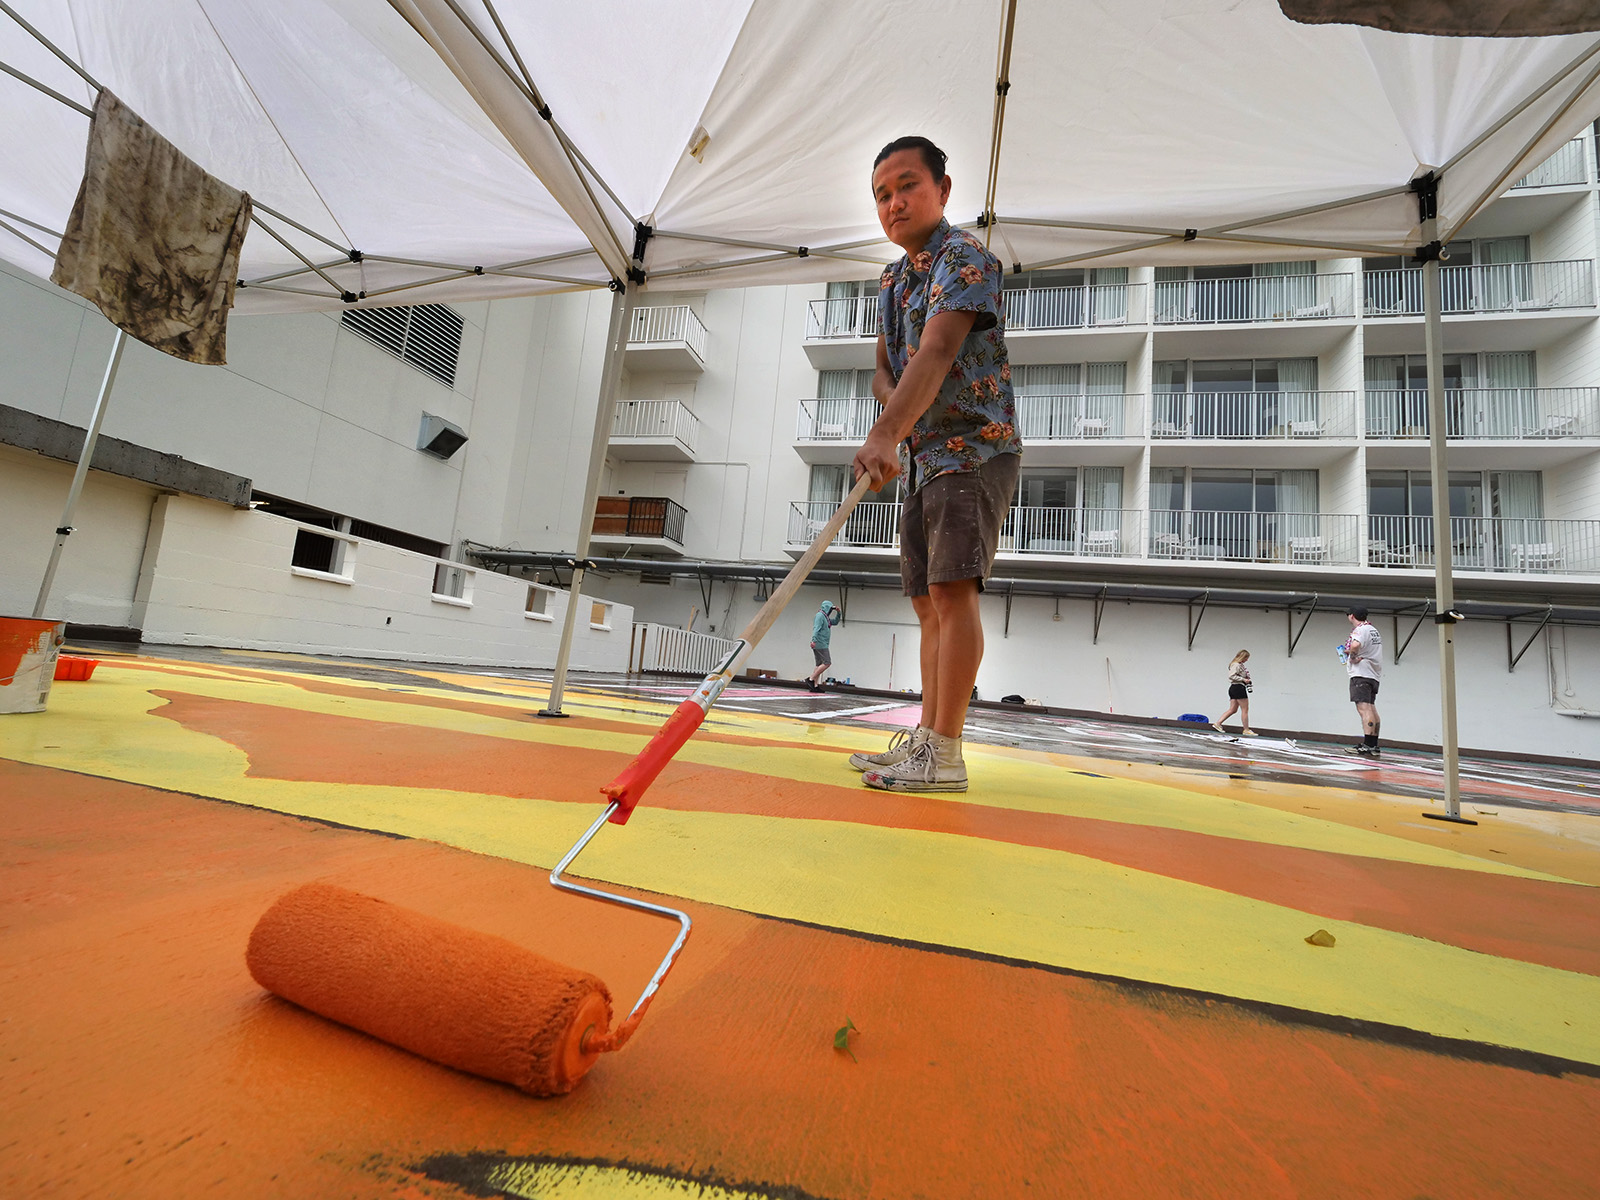 <p>Artist Victor Ving rolls paint onto the surface of his mural at the Alohilani Resort in Waikiki on Jan. 29, the first day of the latest installment in his quest to create landmarks through public art in each of the 50 states.</p>